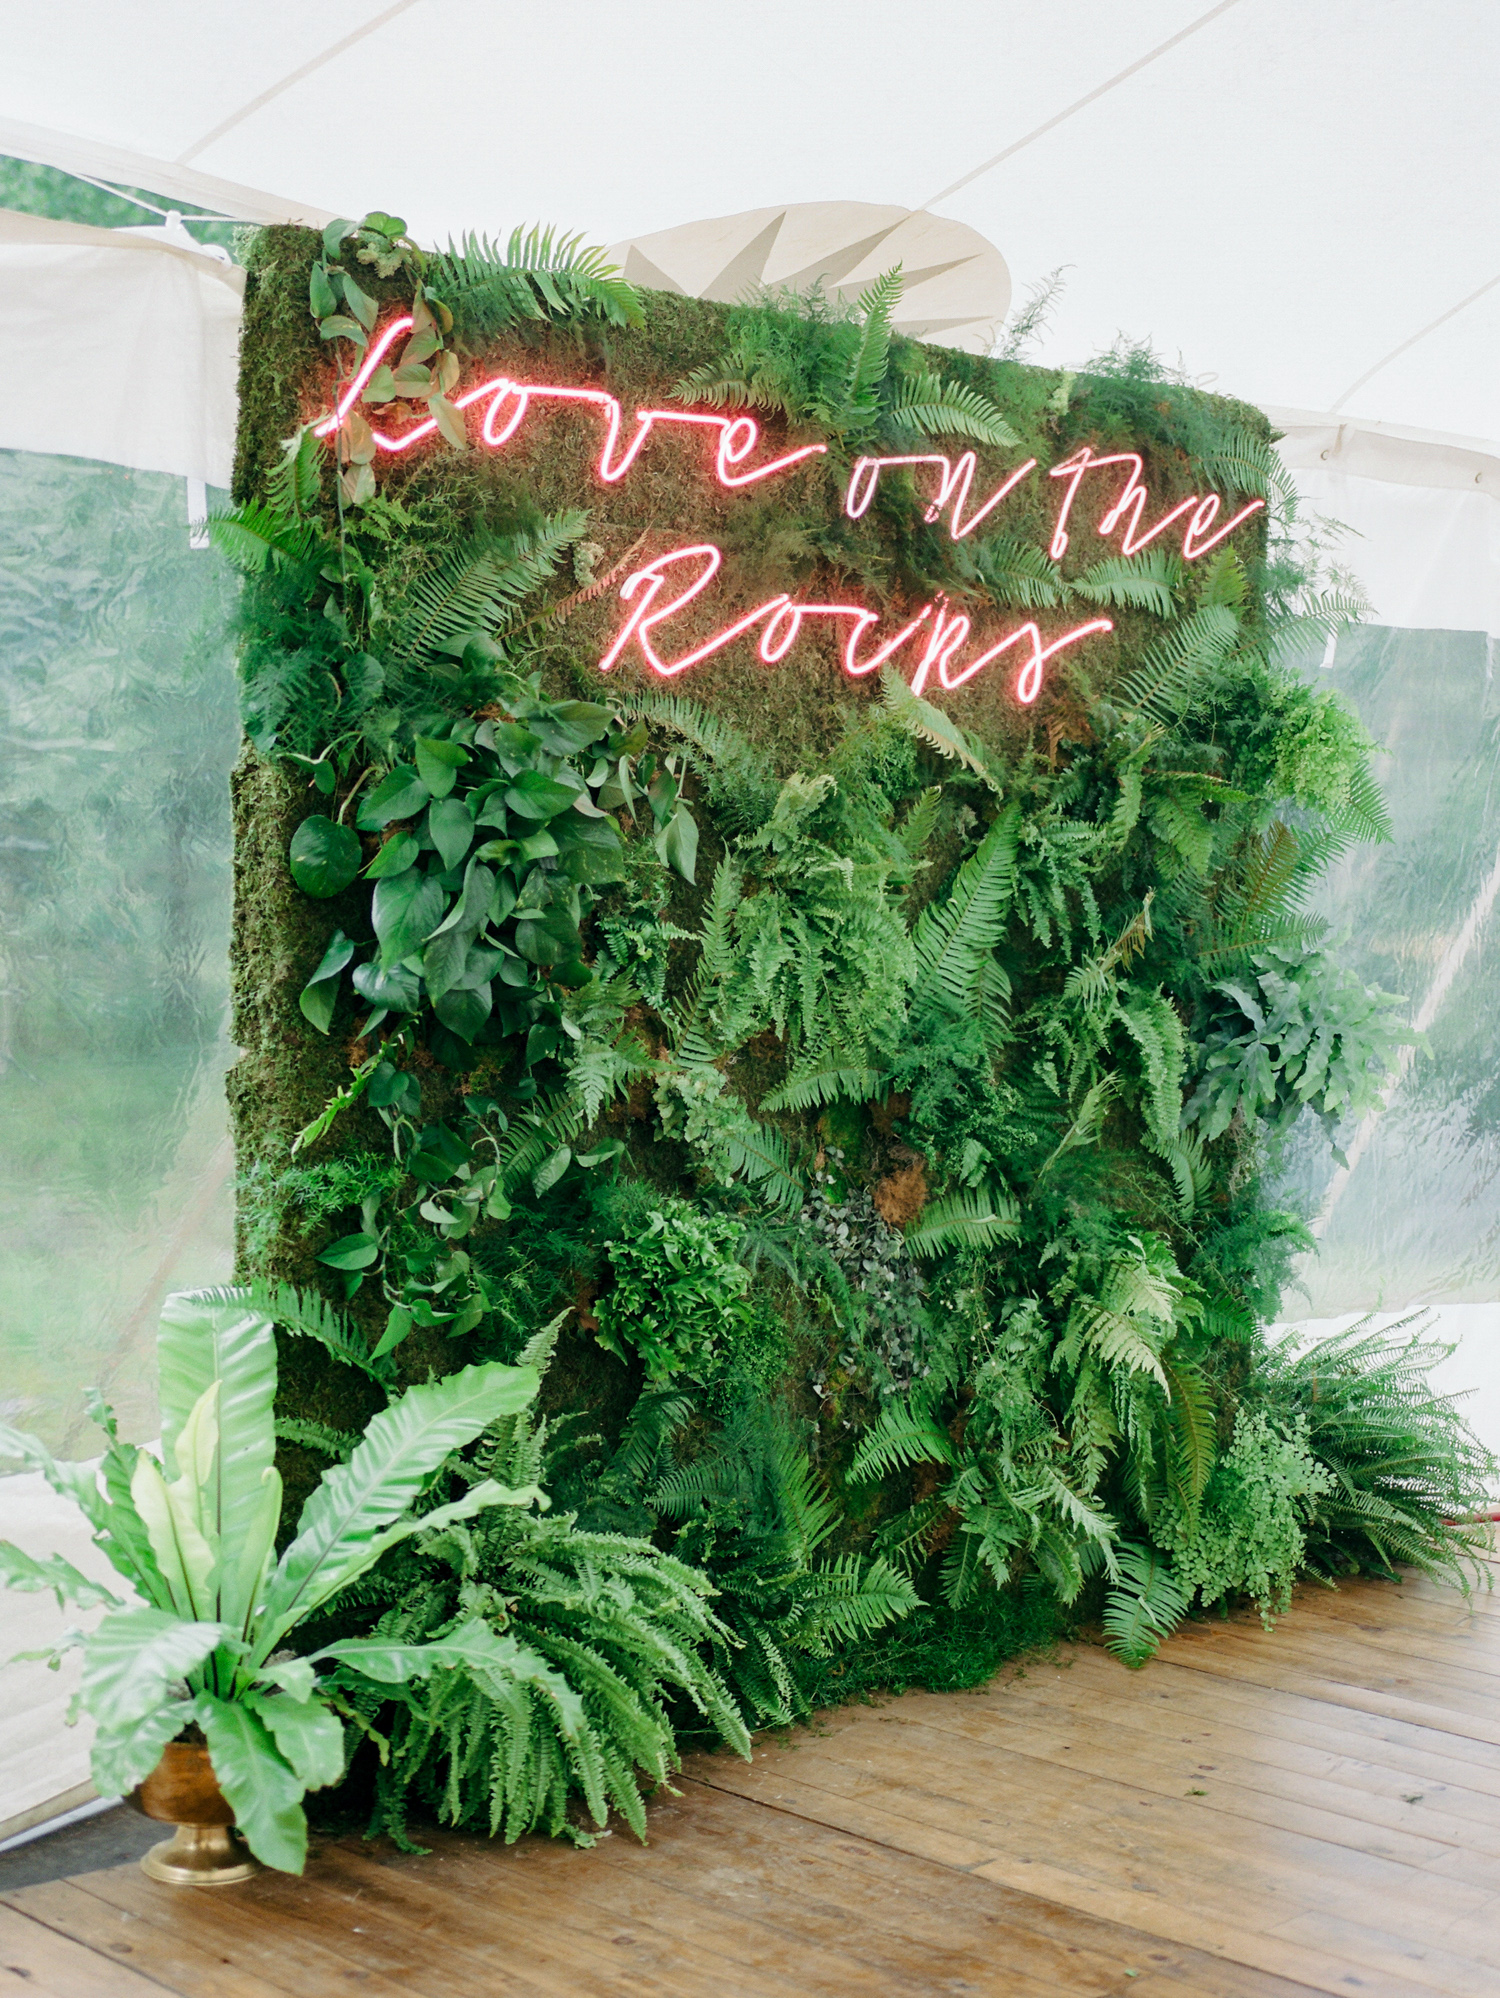 Neon Glow Green greenery wall hedge plant leaf display for photoshoot aspen wedding photobooth